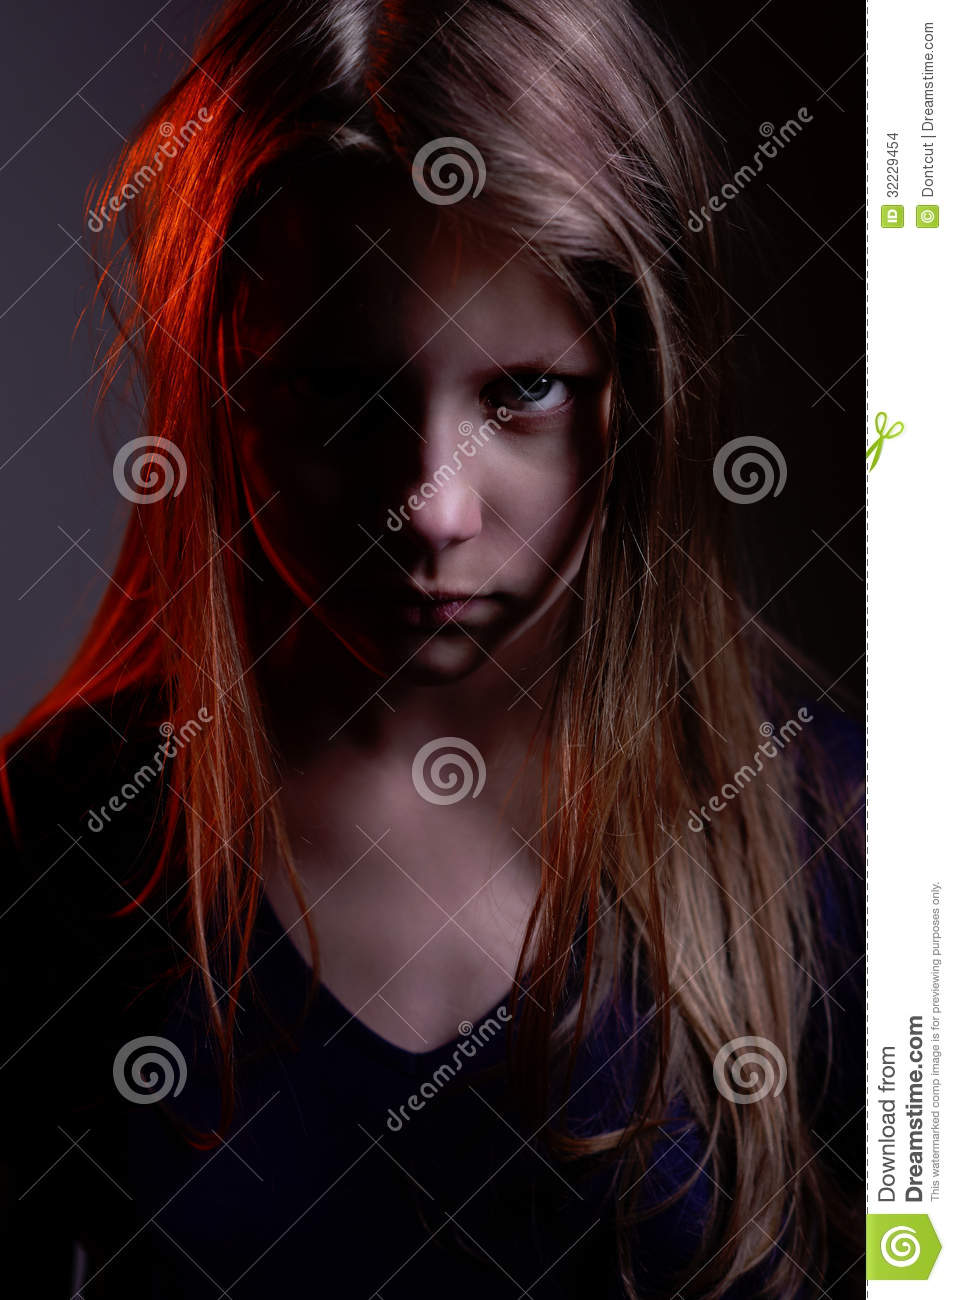 Closeup Portrait Of A Scary Little Demon Girl Stock Images - Image ...